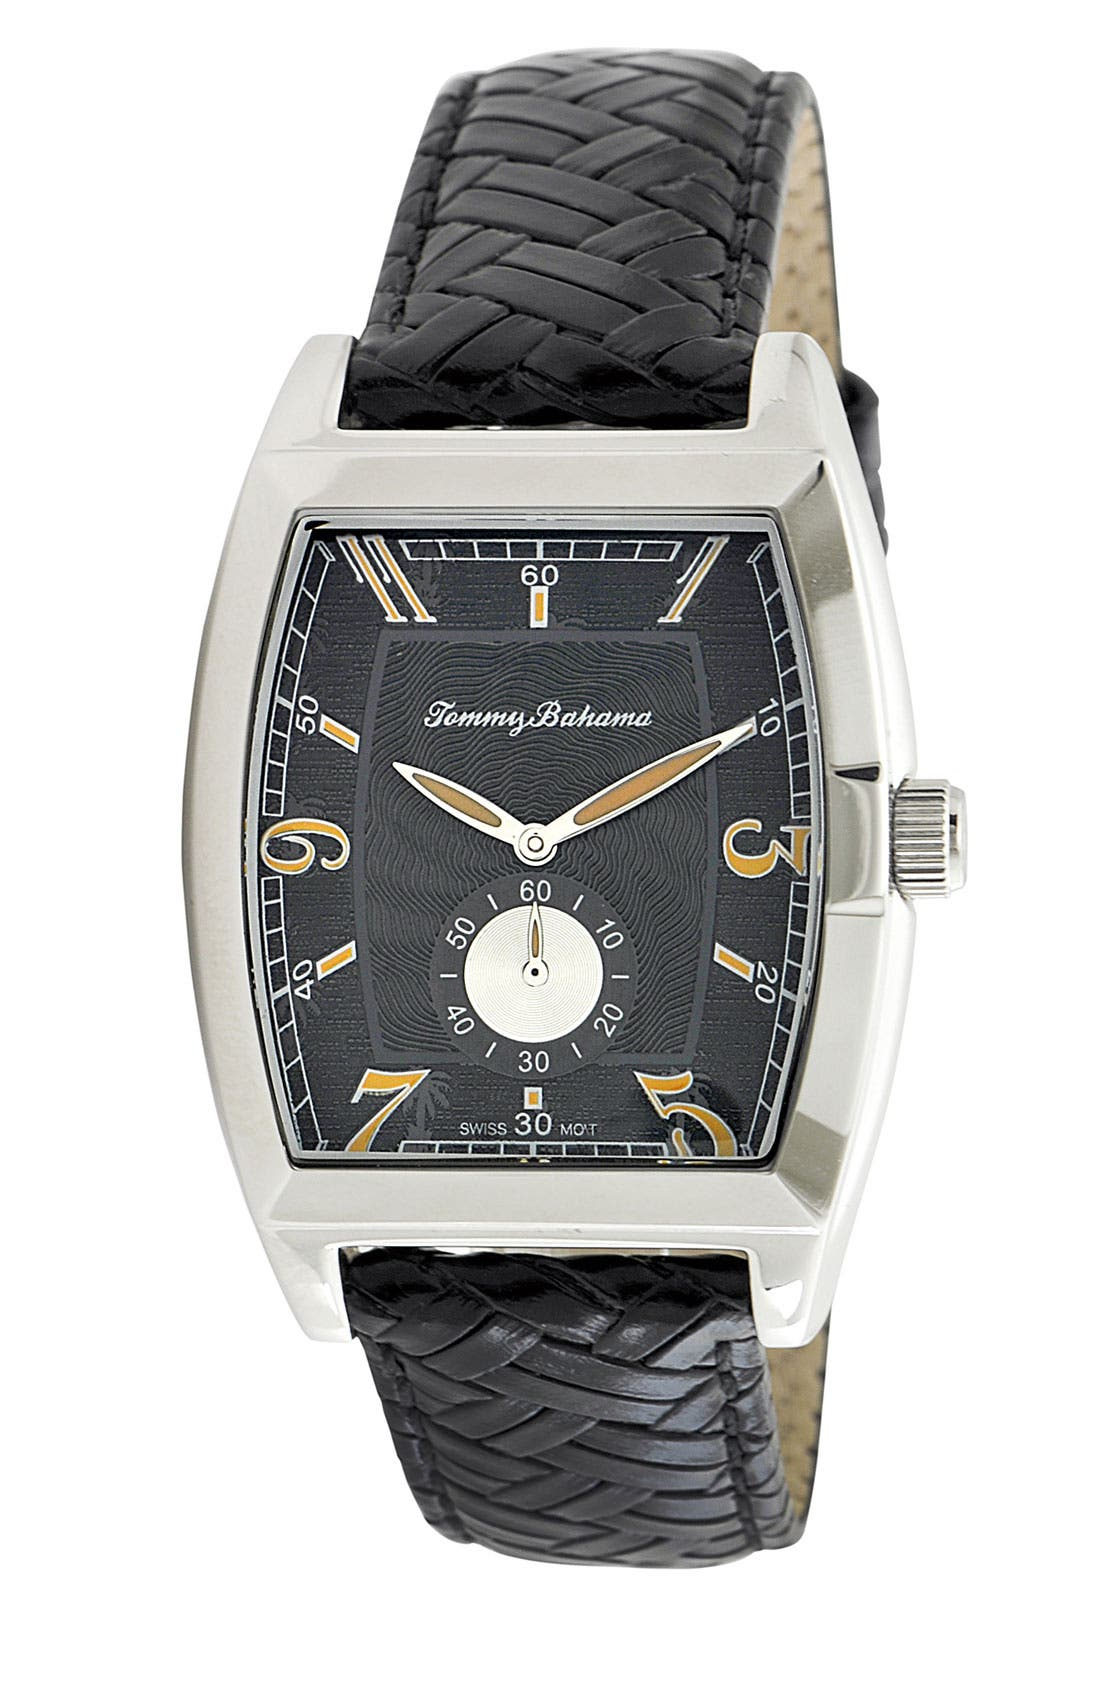 Alternate Image 1 Selected - Tommy Bahama 'Islander' Braided Leather Strap Watch, 36mm x 50mm